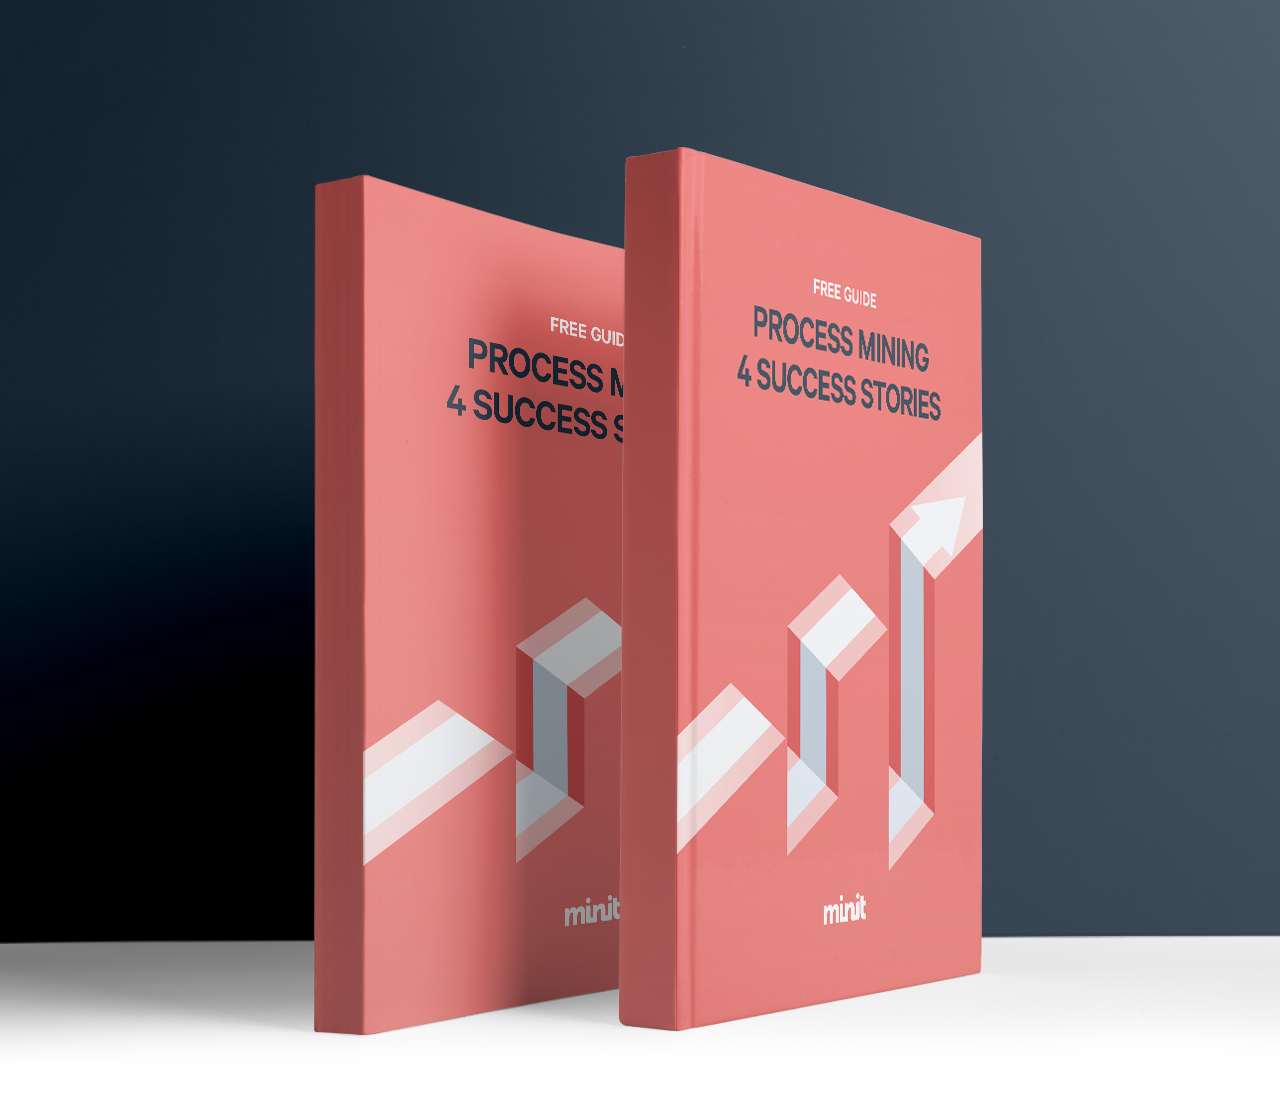 minit-process-mining-four-success-stories-ebook